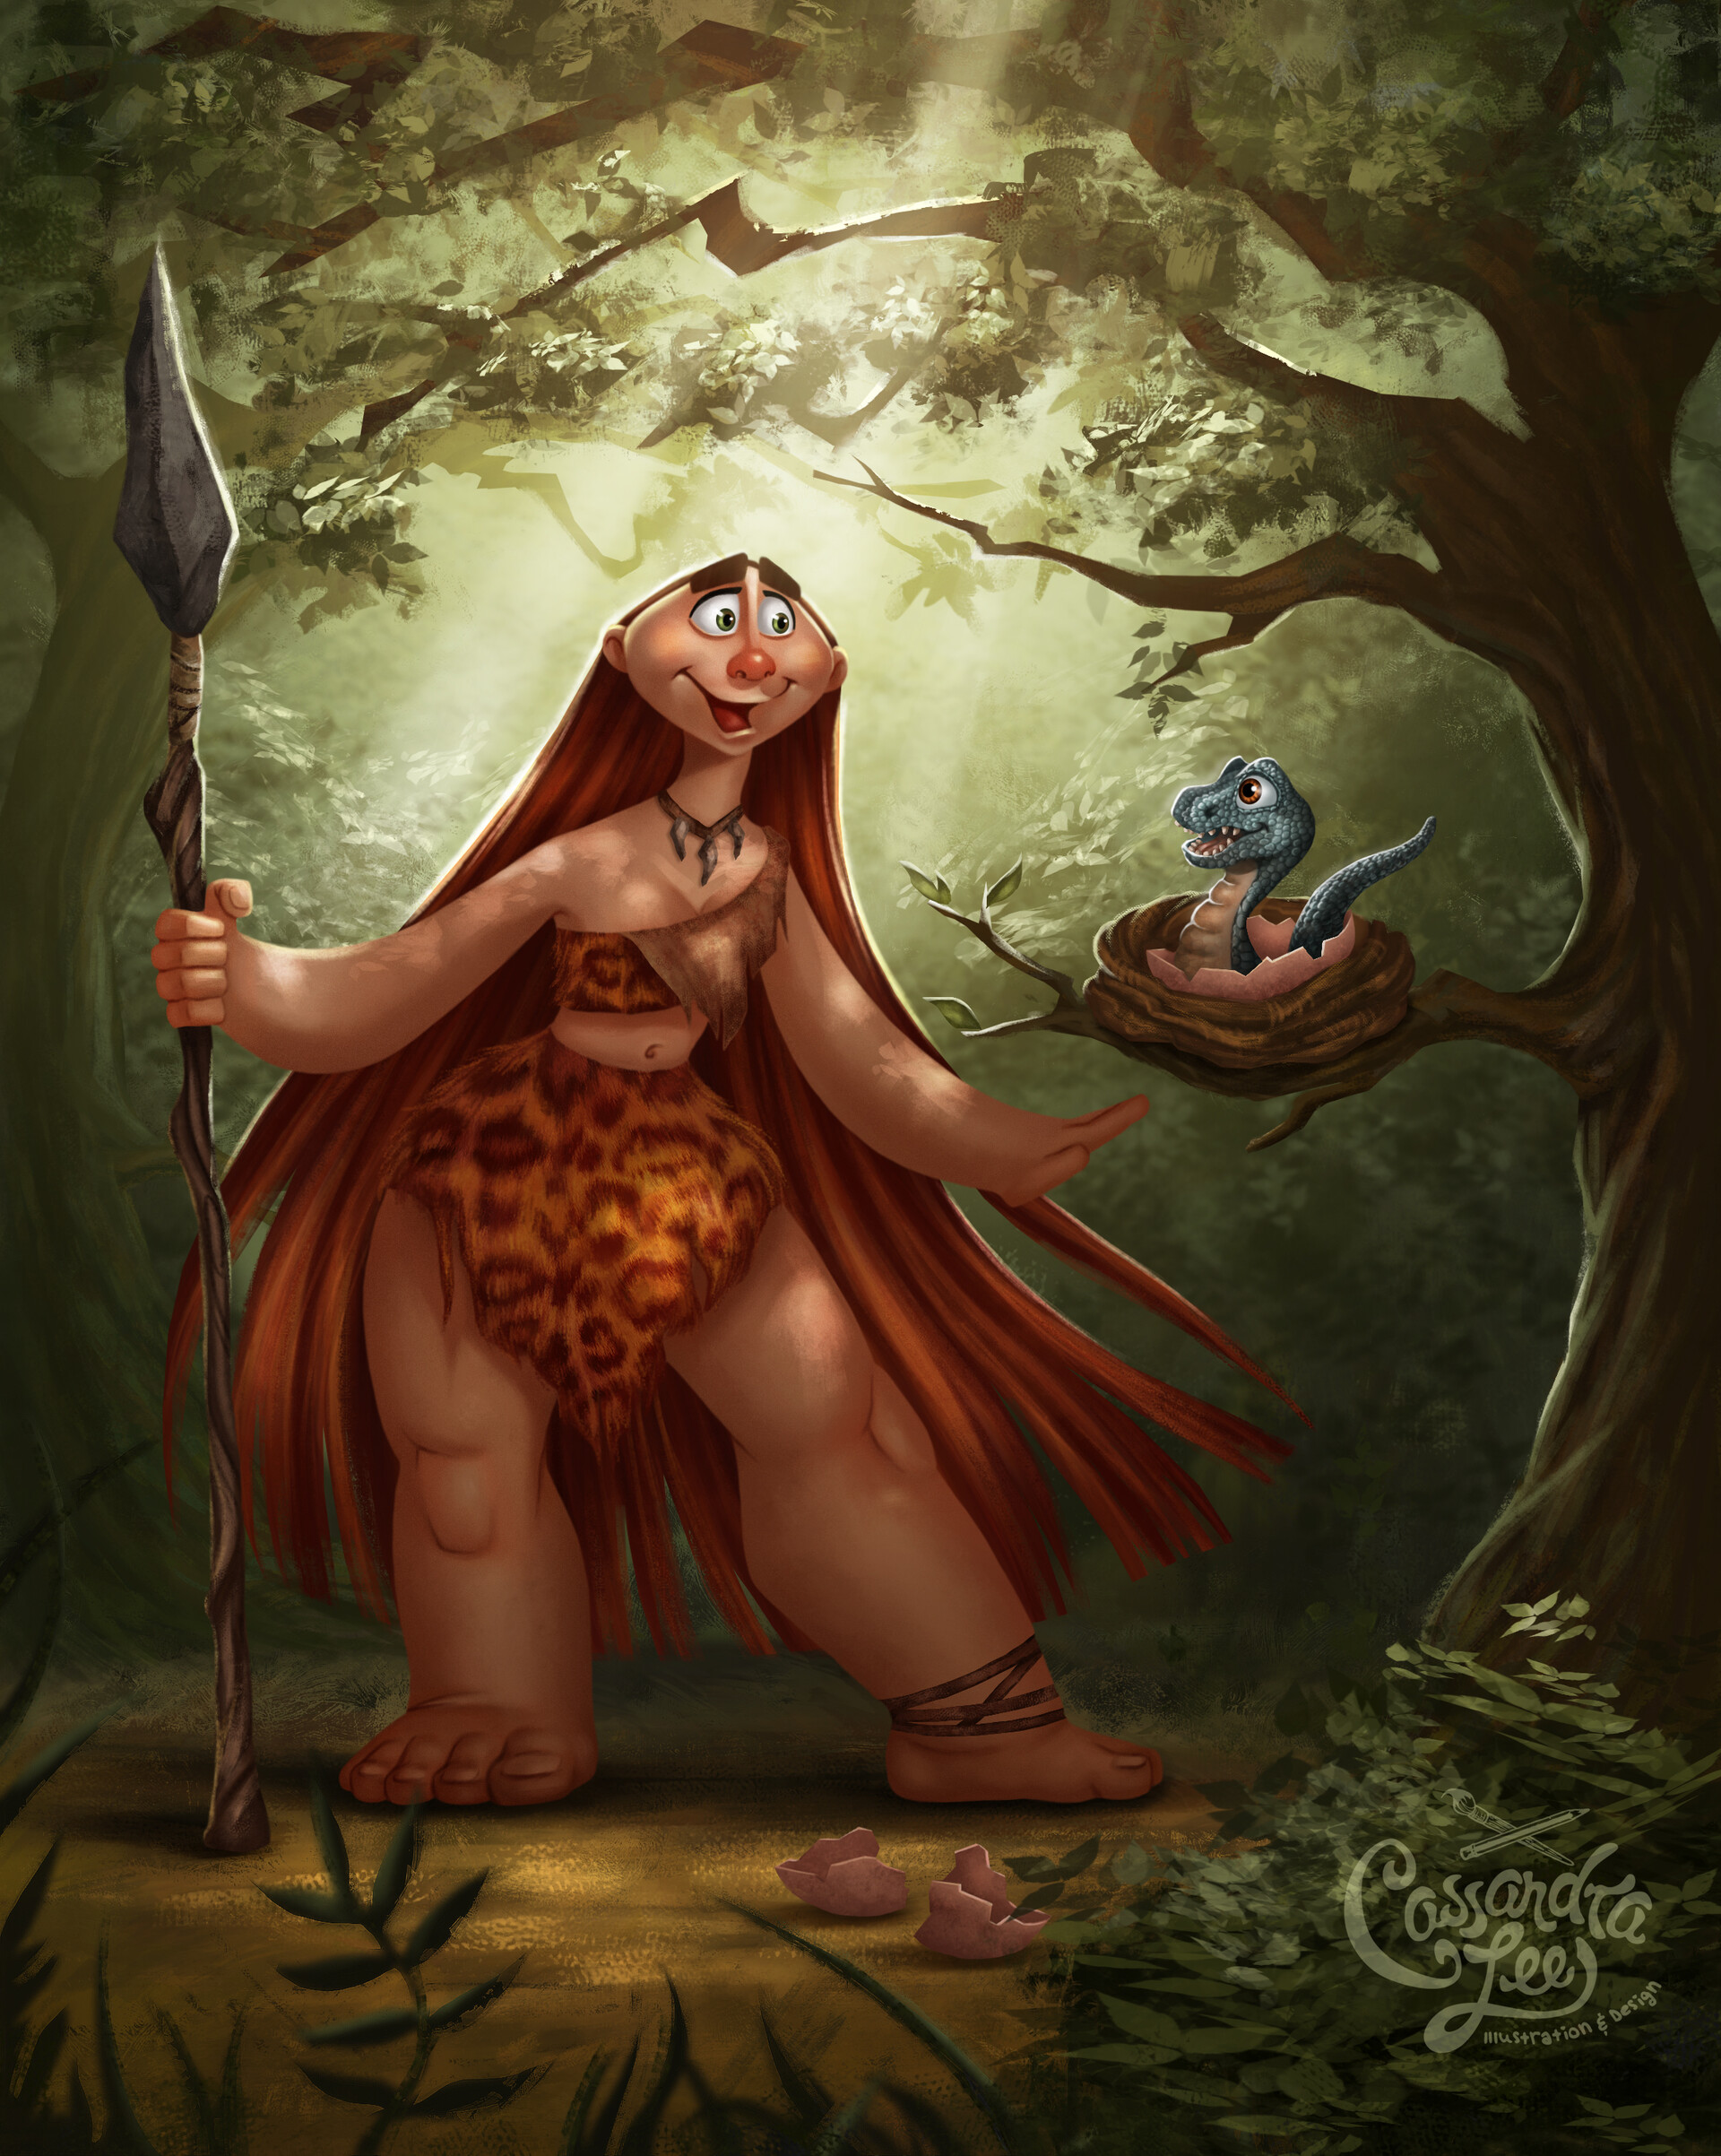 Cassandra lee cavewoman final